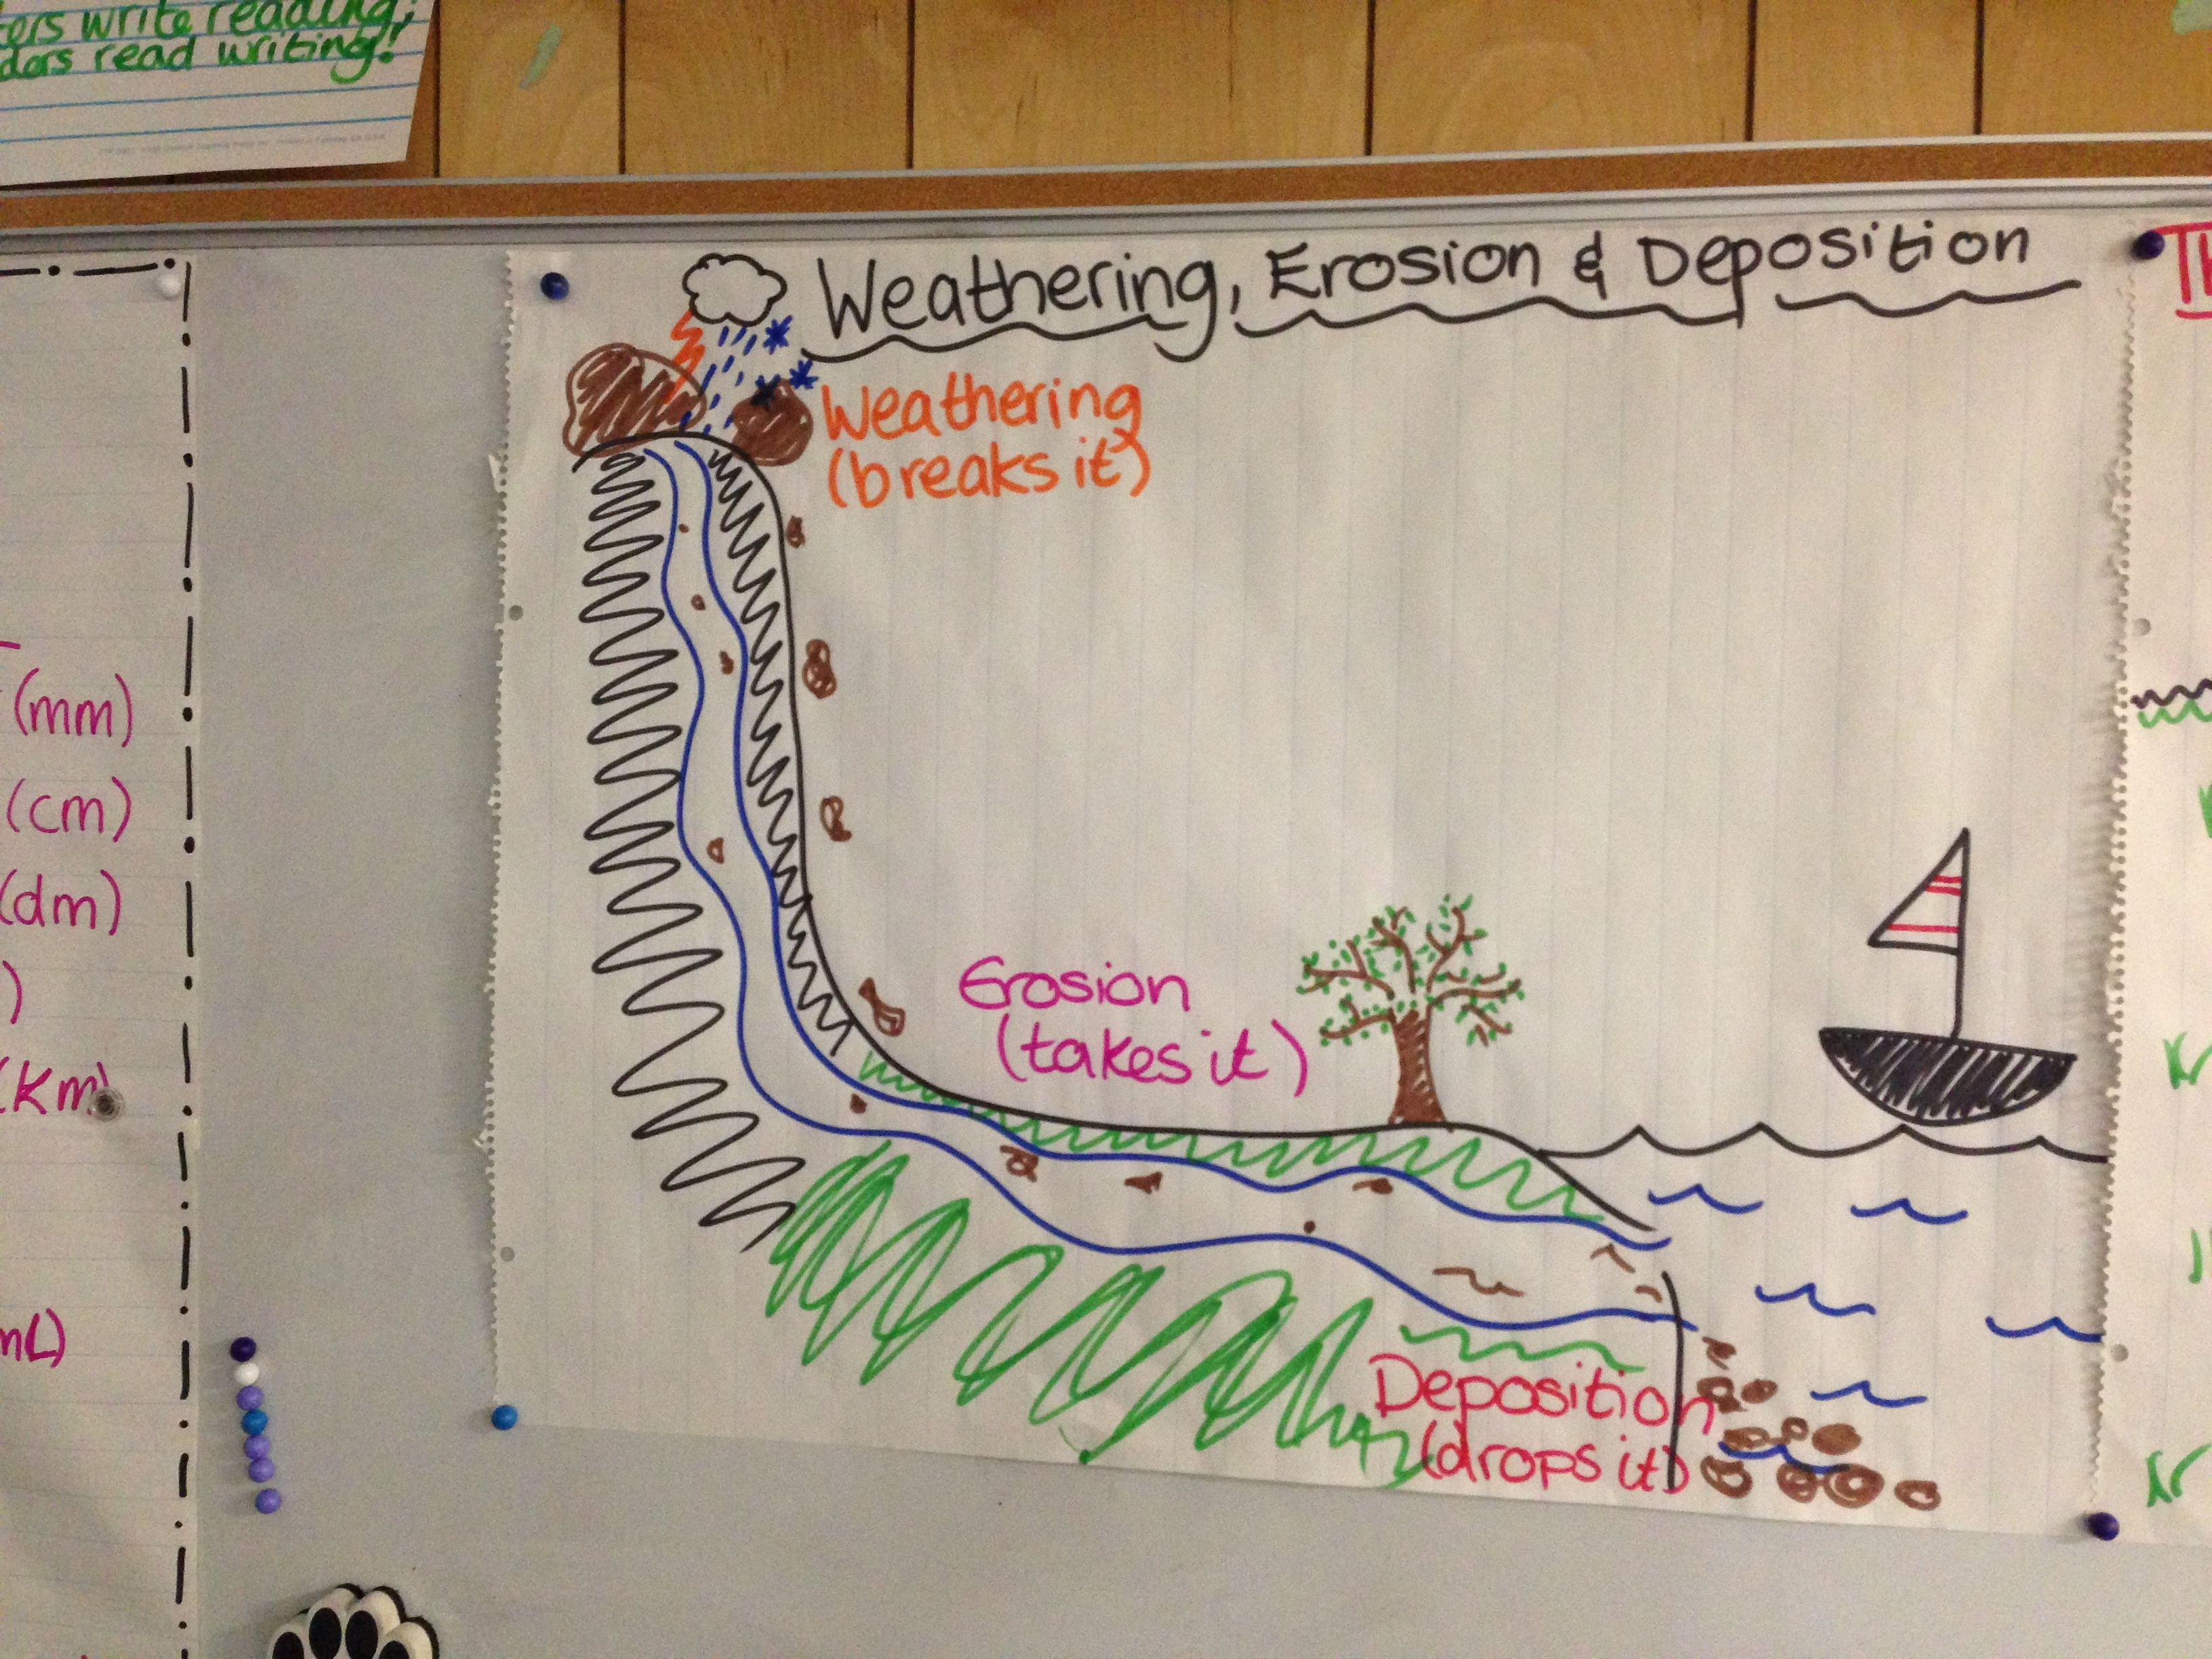 Weathering Erosion Deposition Poster 4th Grade Science